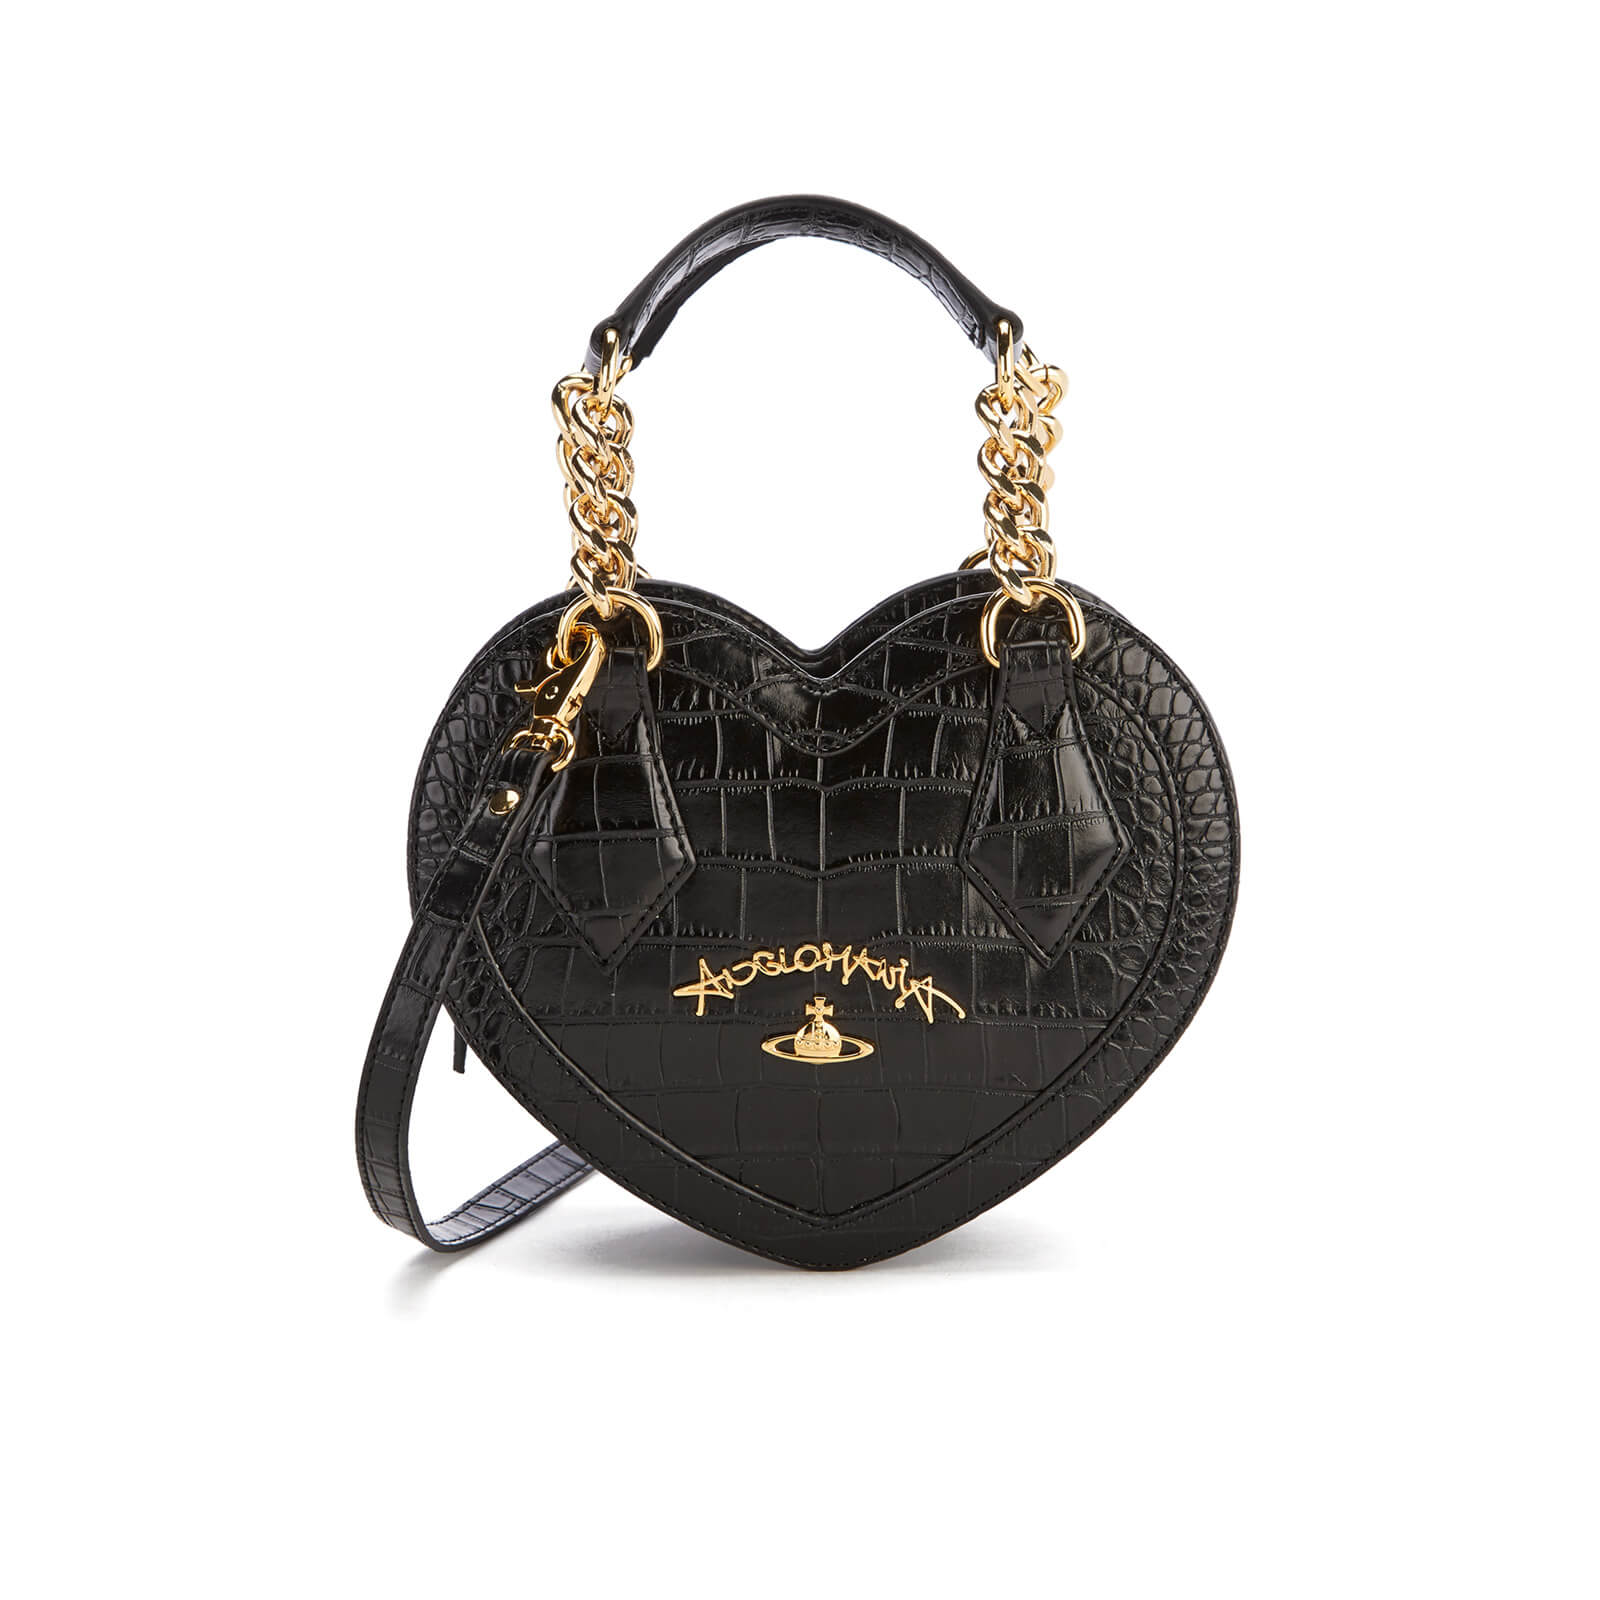 Vivienne Westwood Women s Dorset Croc Heart Cross Body Bag - Black - Free  UK Delivery over £50 72f26aa342cb6